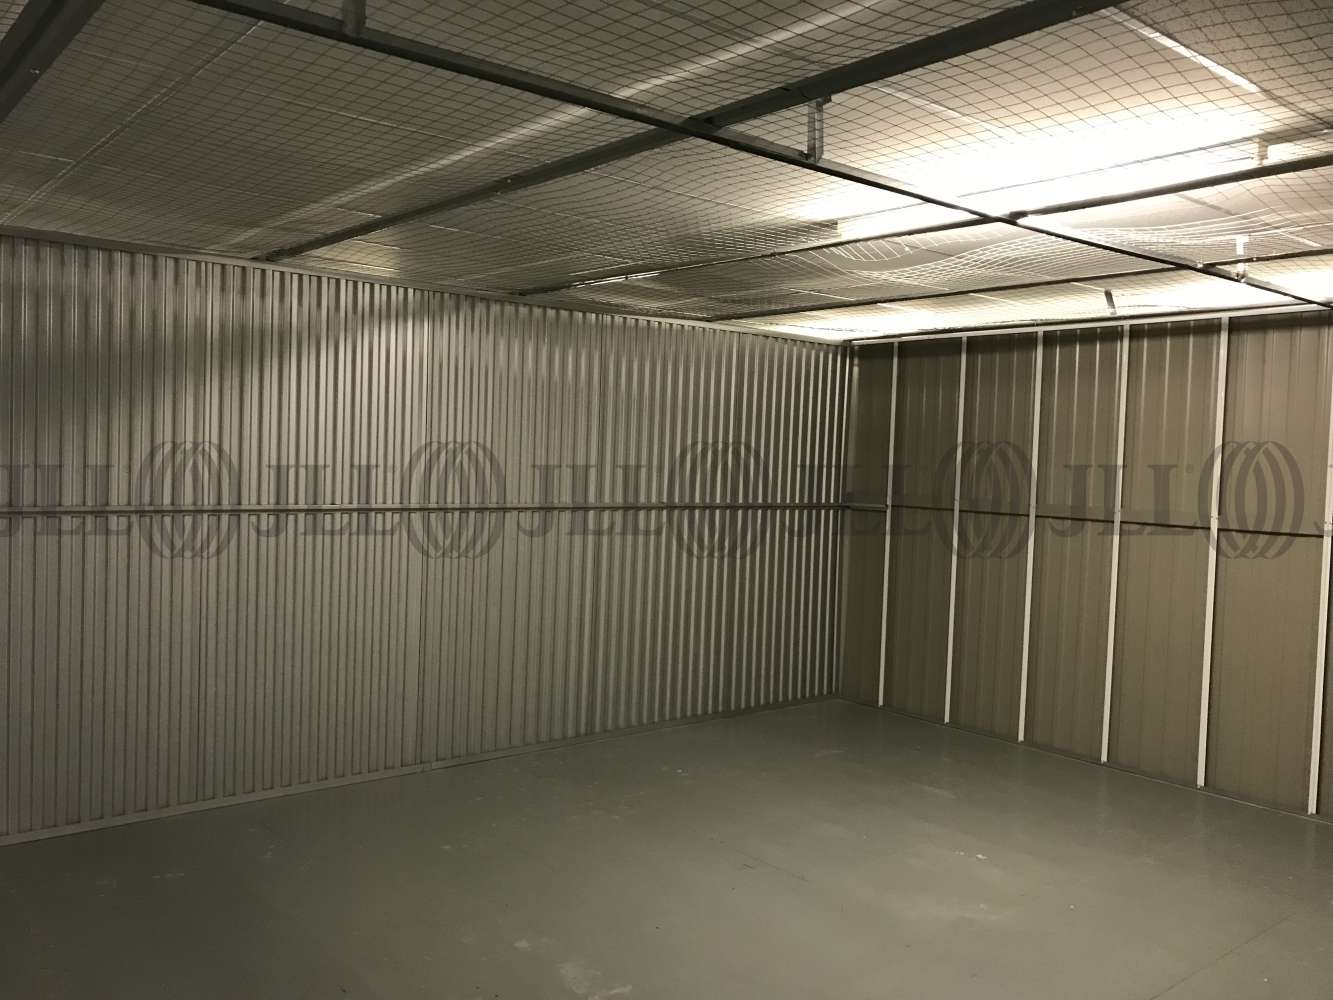 Industrial Waltham abbey, EN9 1JD - Commercial storage and office space - 0514